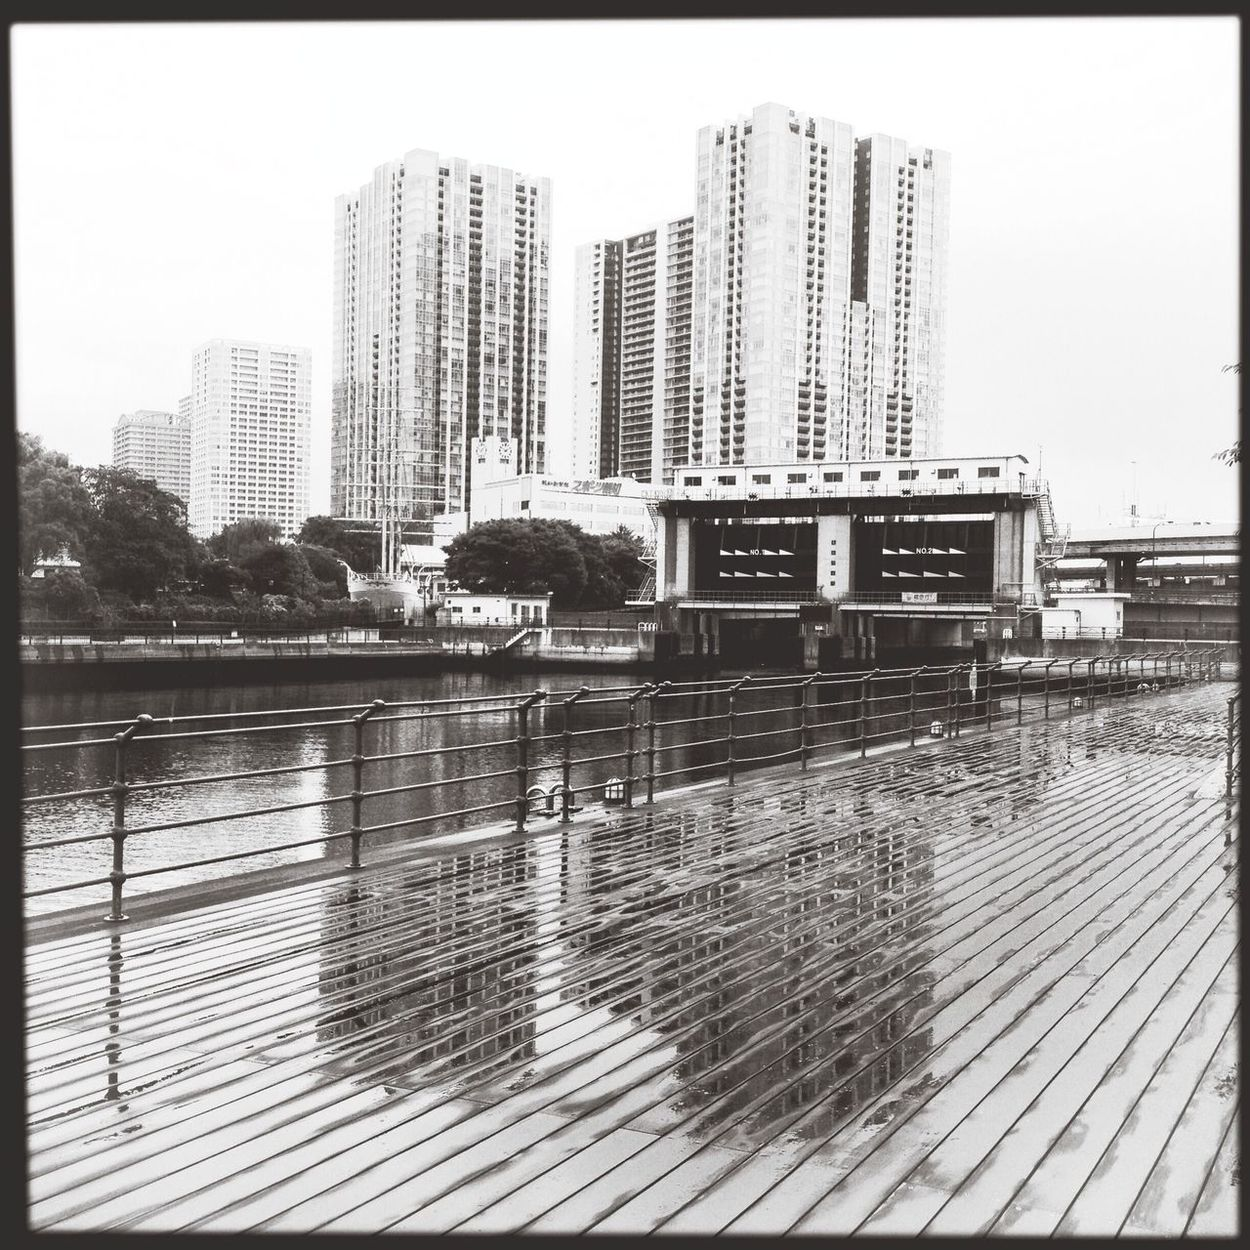 Rainy Days Wooddeck Wood Deck Canal Riverside Water Gate Black And White Monochrome Quiet Quiet Places Calm Water Front  Waterfront Refrection Boardwalk Rain Puddle  Rain Puddle Reflection Rainscapes Buildings Tokyo,Japan